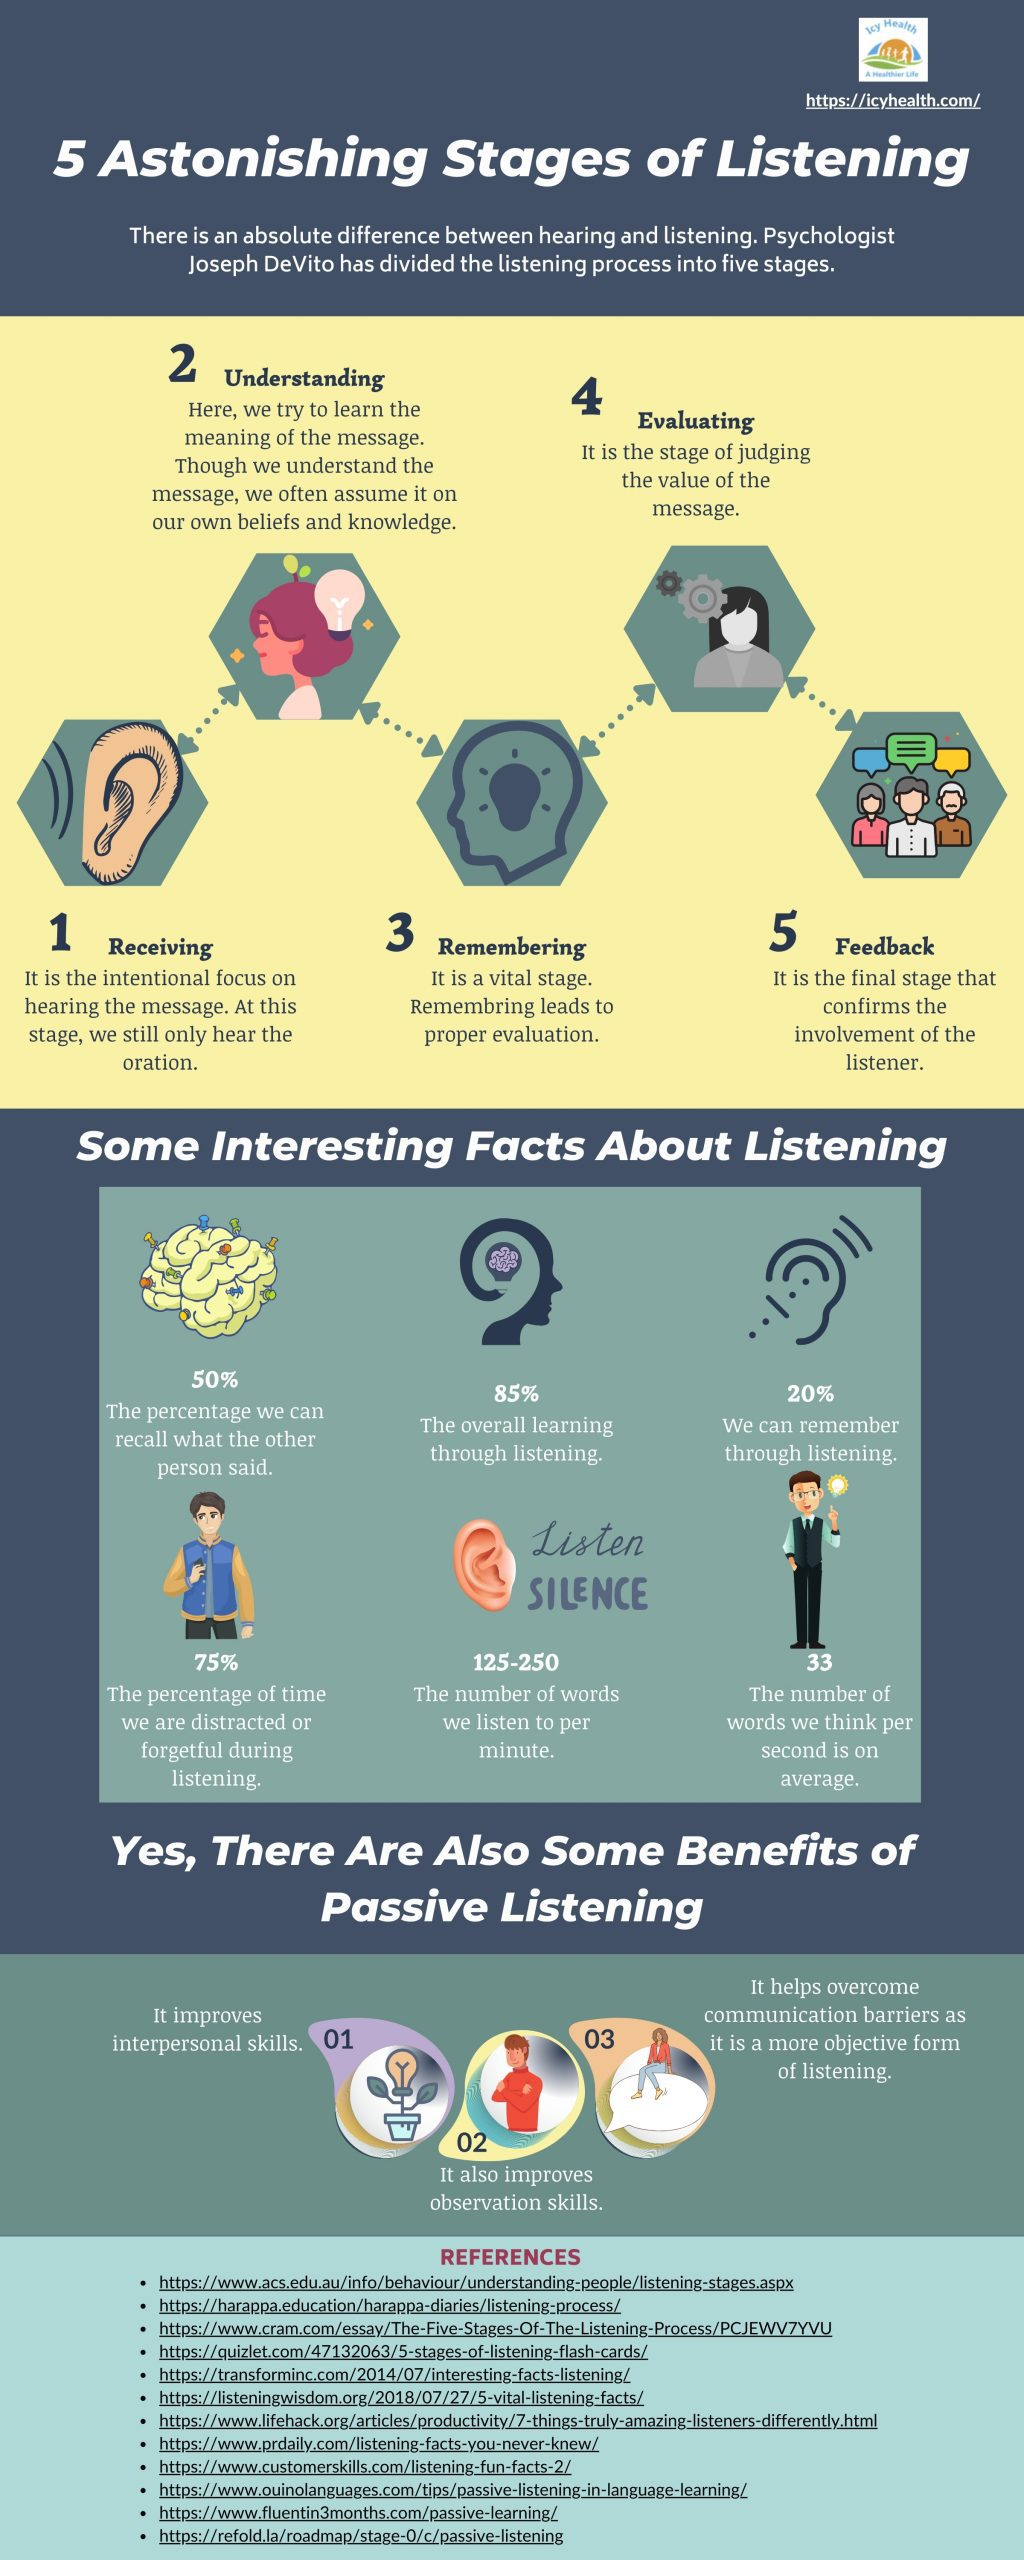 5 Astonishing Stages of Listening